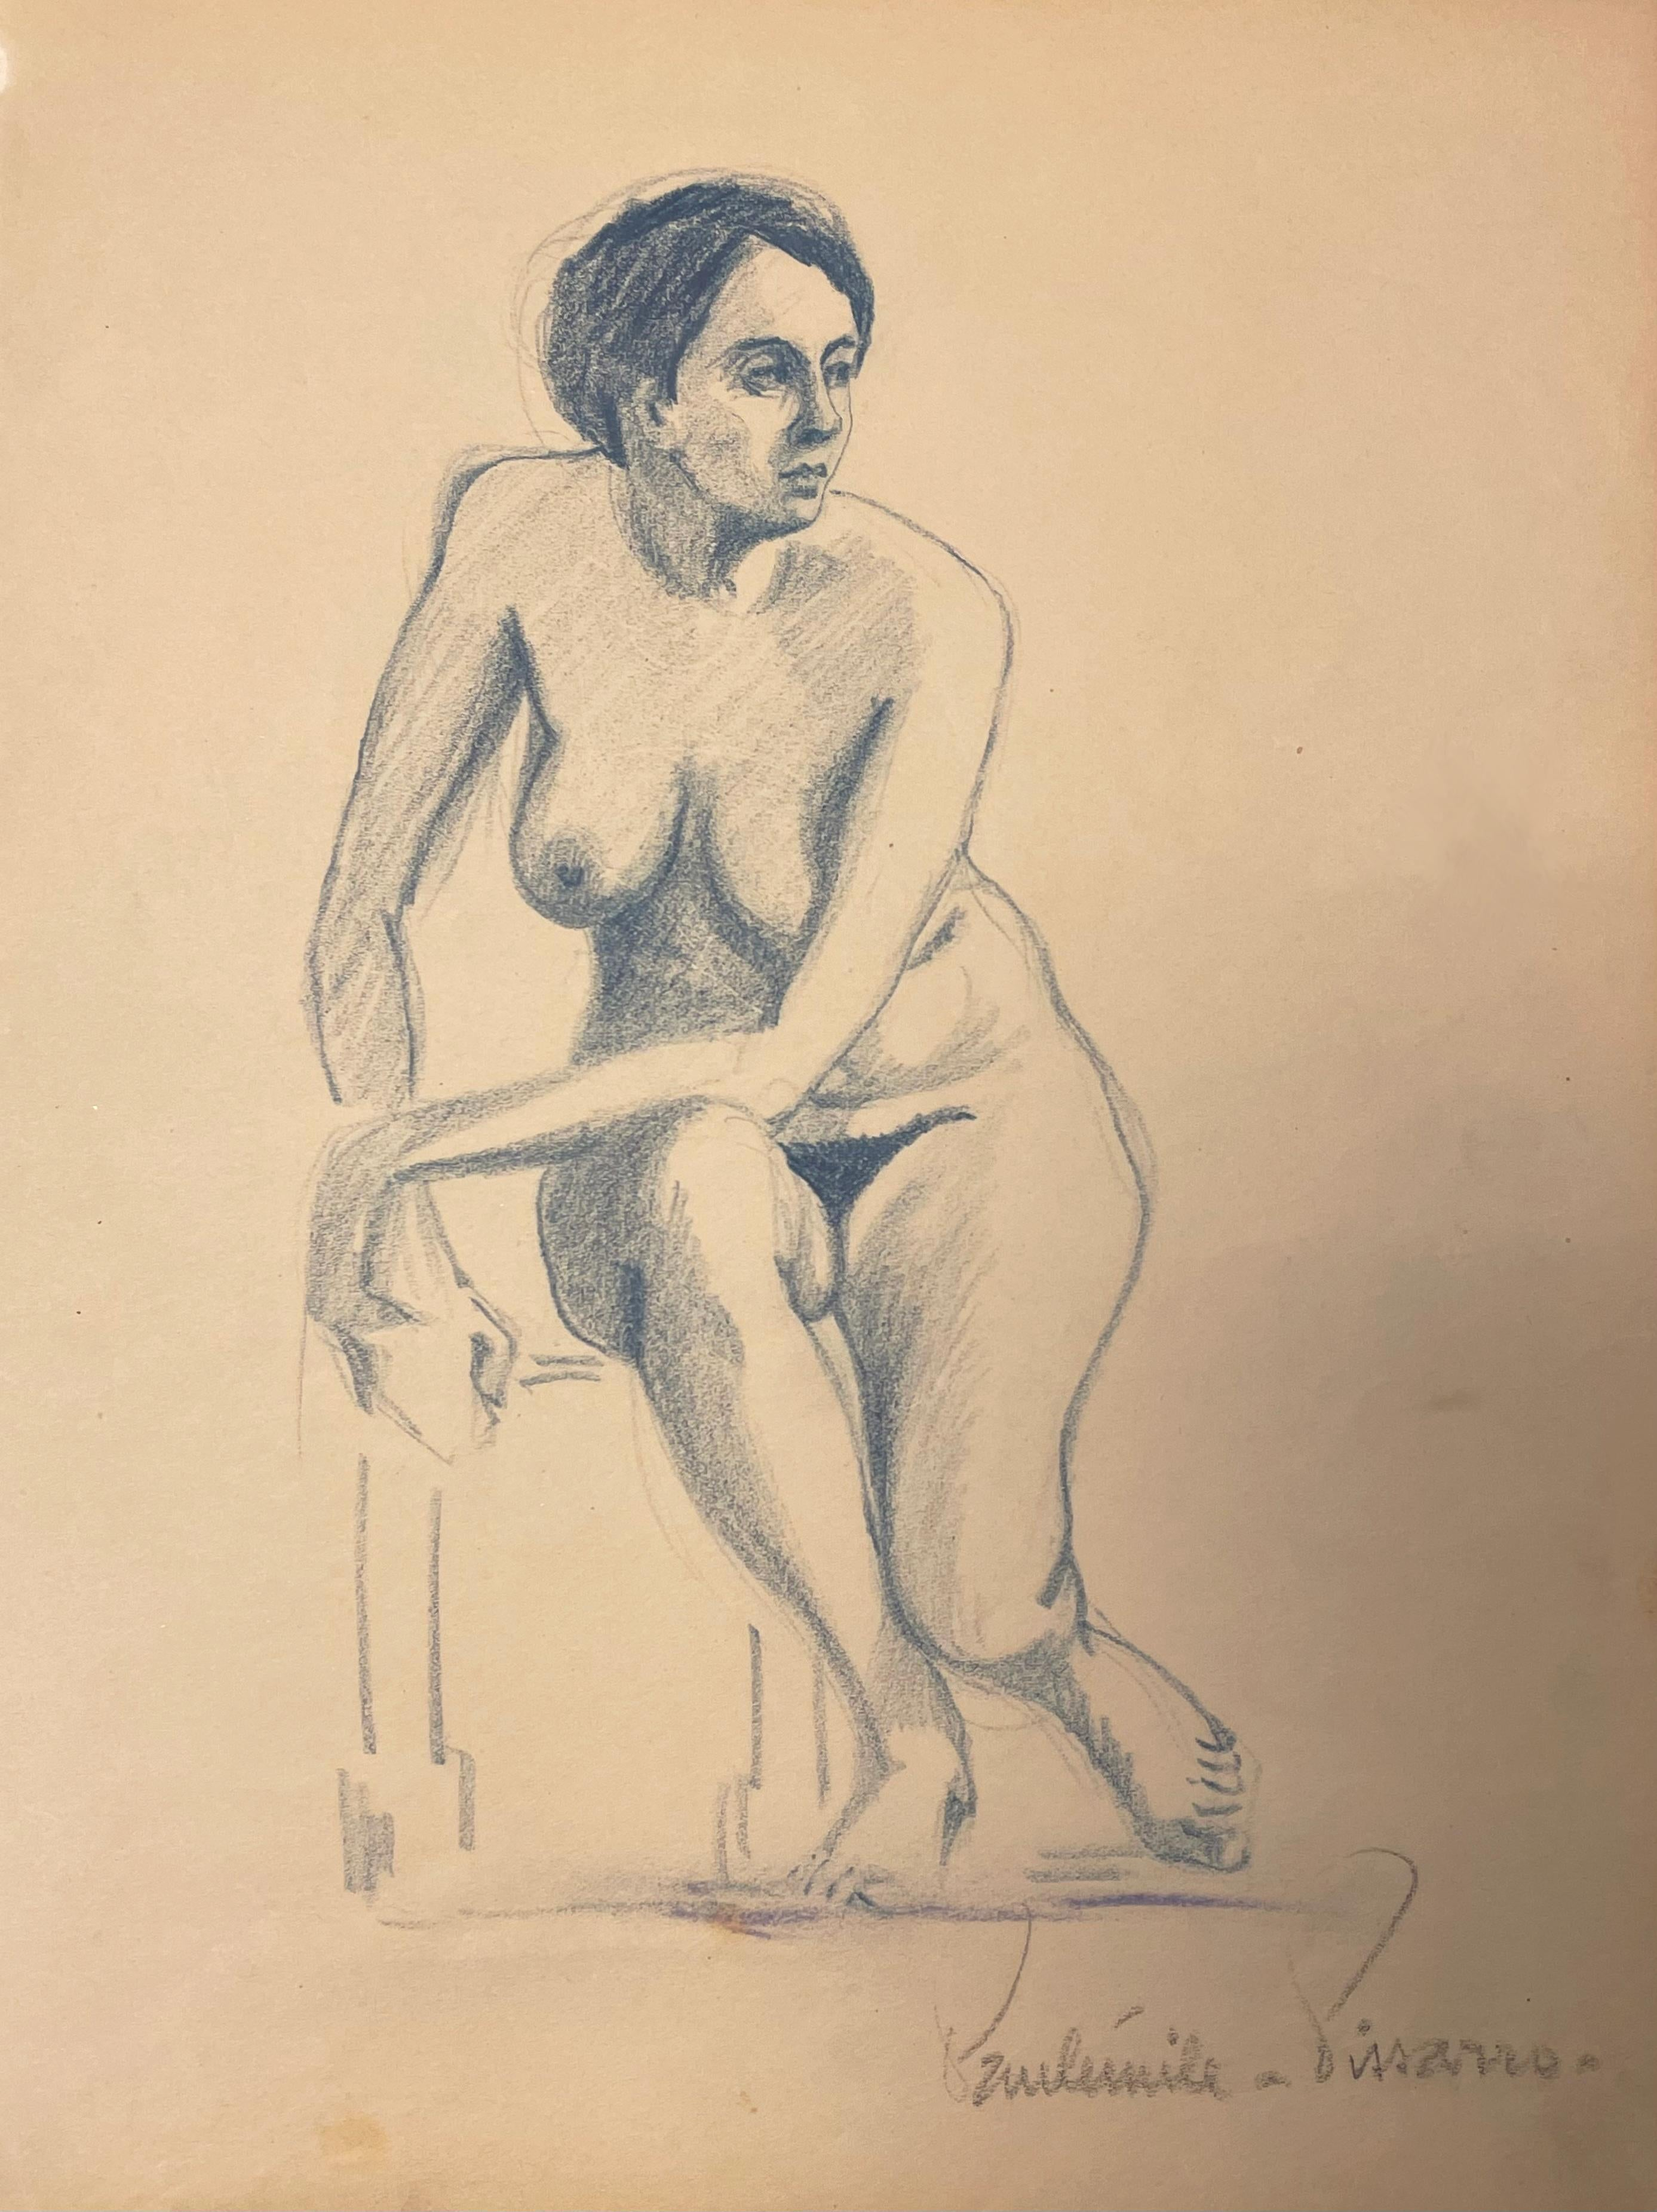 Nue Assise by Paulémile Pissarro - Nude drawing